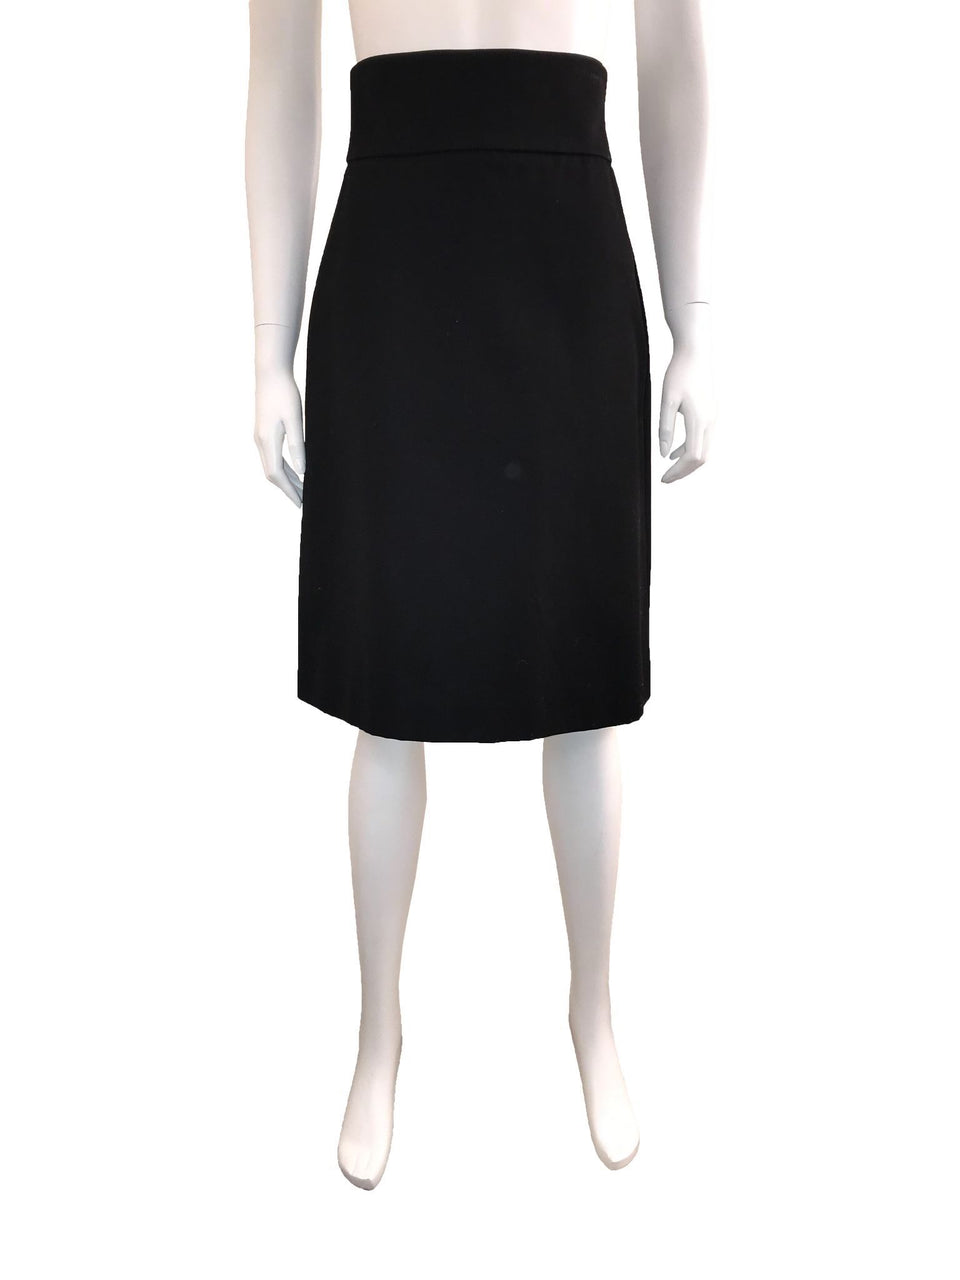 Black Cotton Skirt with Thick Waistband